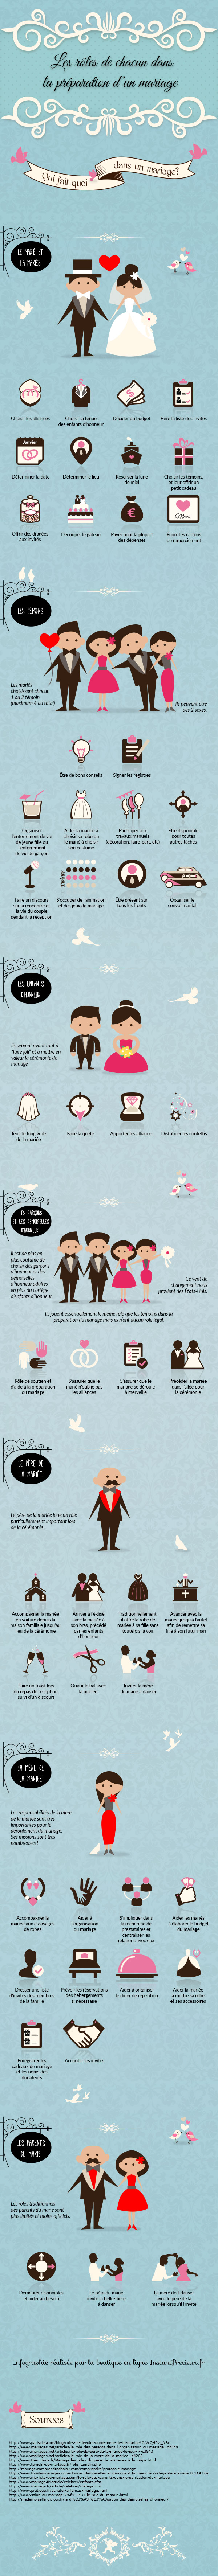 infographie-mariage-instant-precieux-min